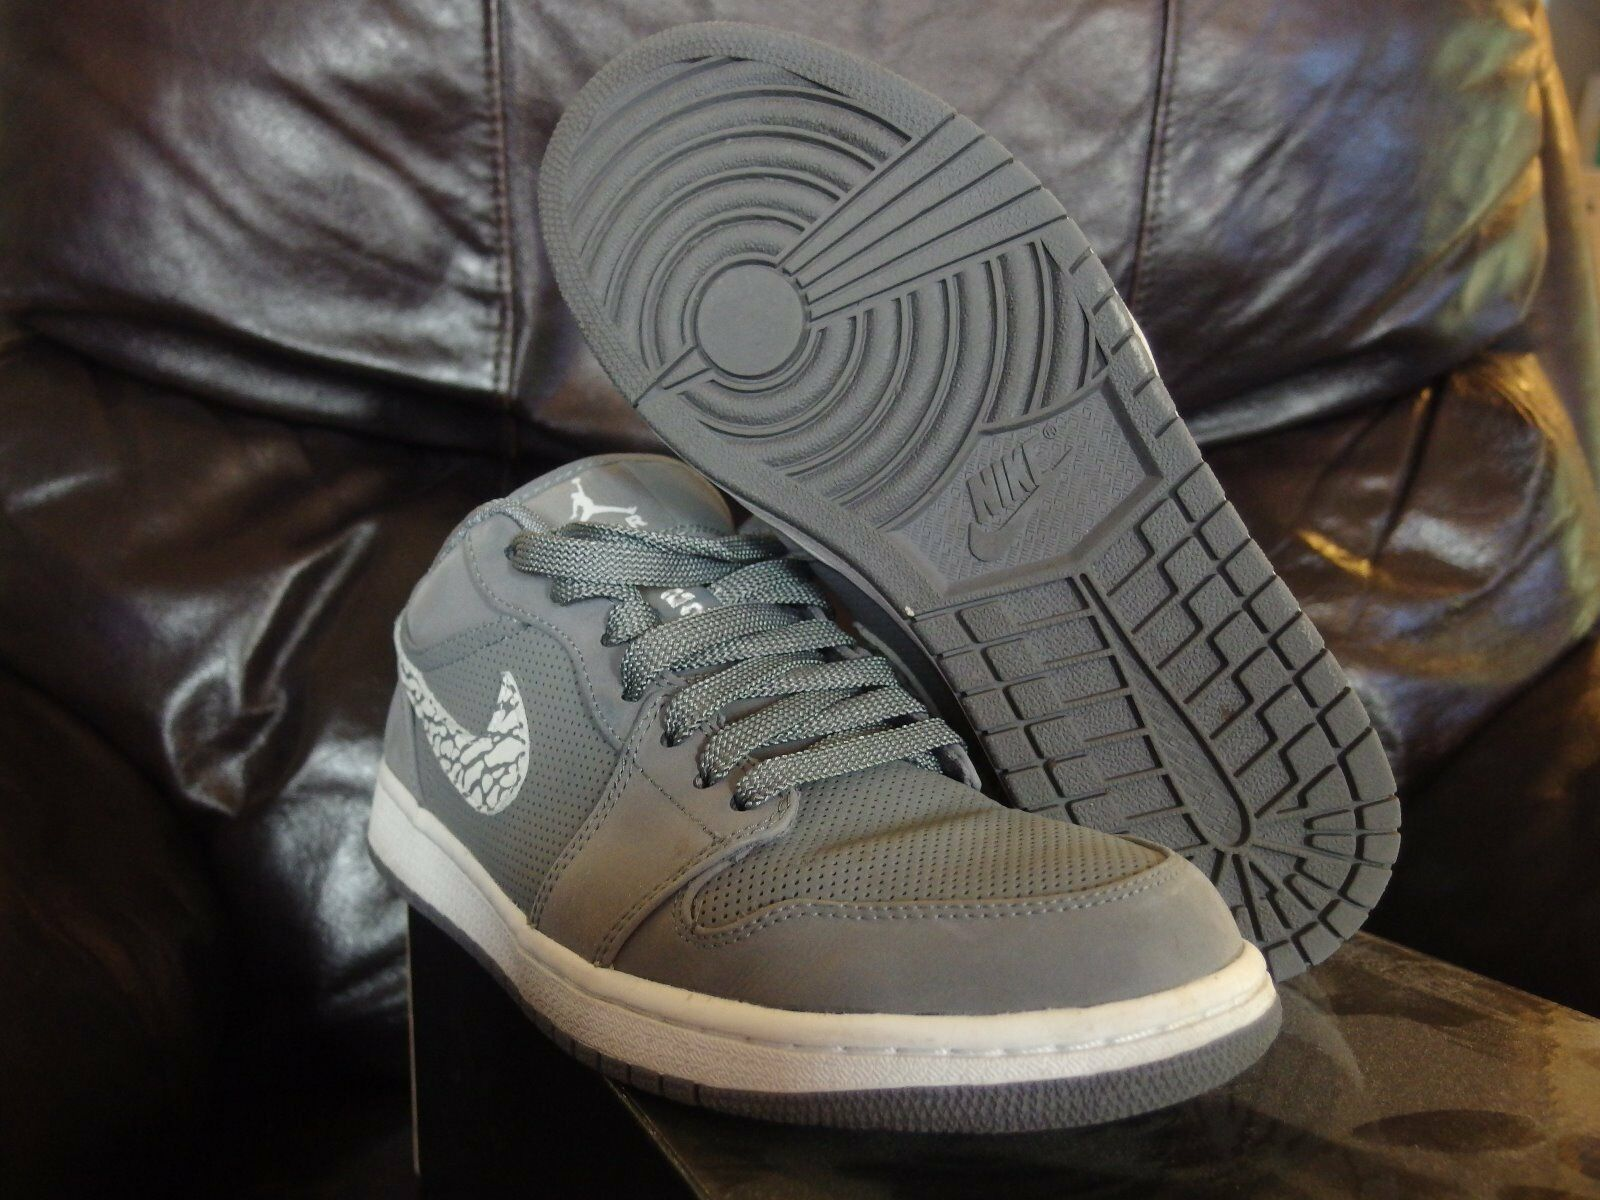 2011 Nike Air Jordan I Retro Retro Retro 1 Phat Low COOL grau CEMENT  supreme boost kaws a9ccad